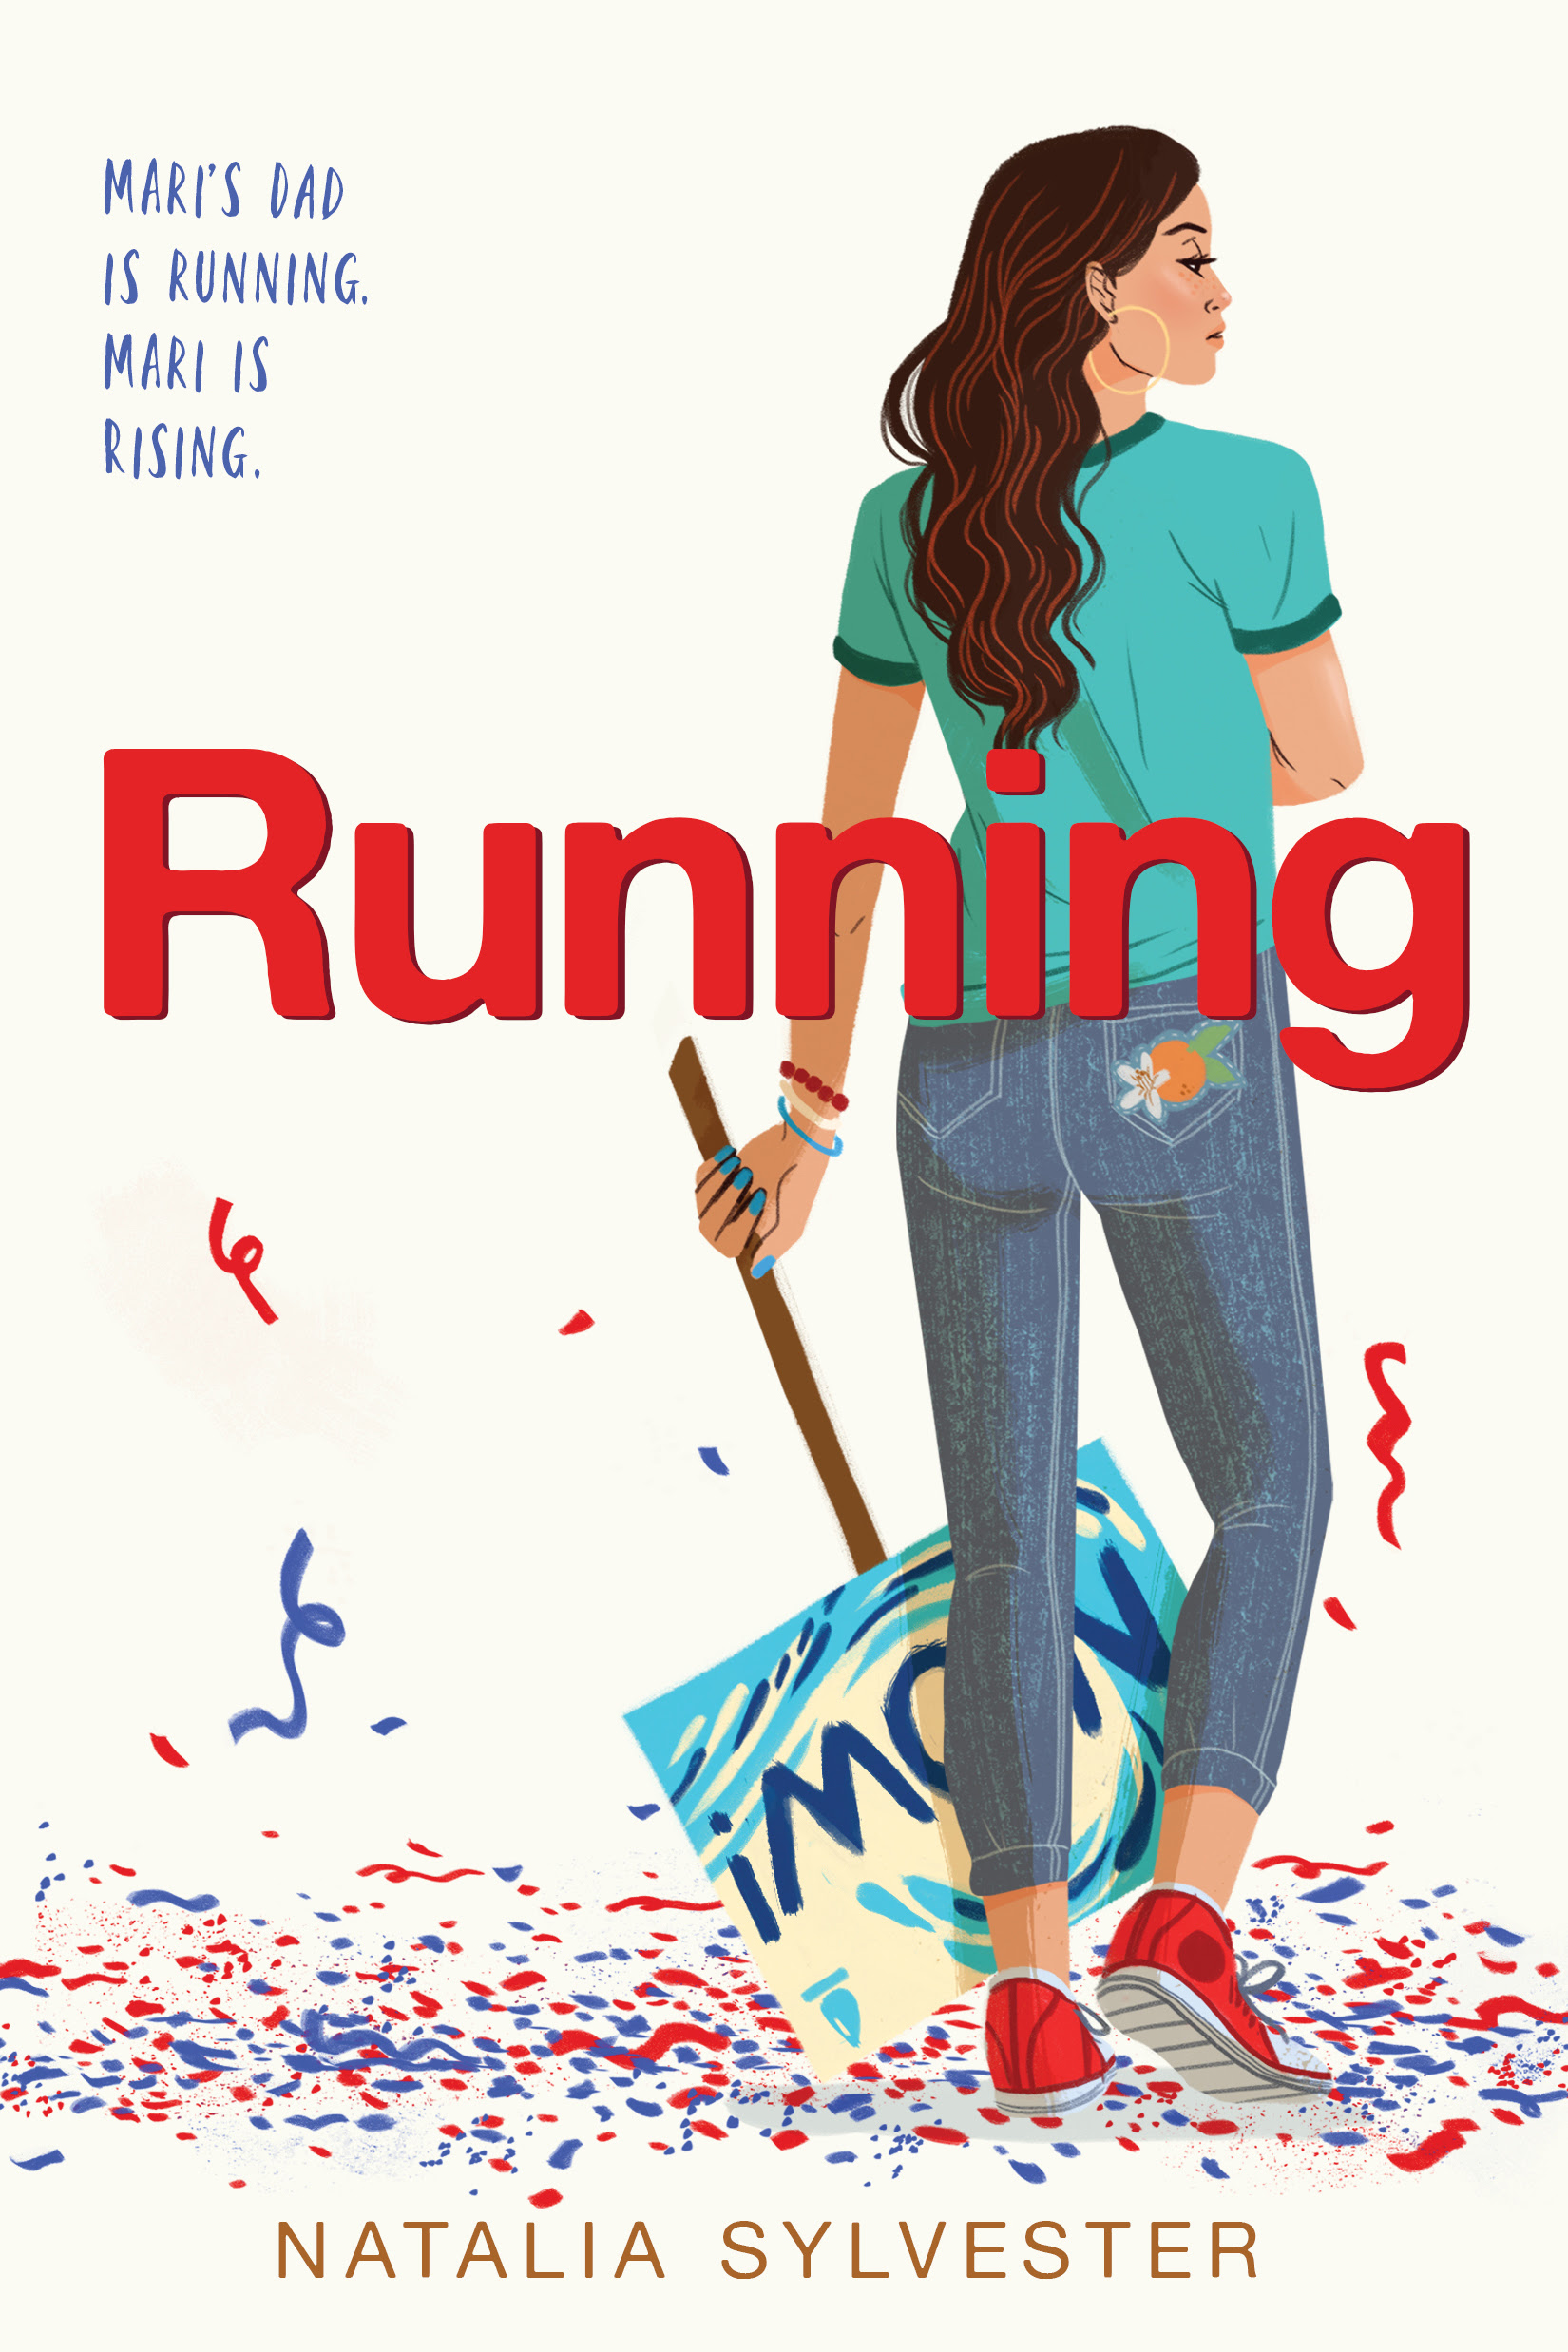 Cover reveal! - 15-year-old Mariana's father is running for president in Natalia Sylvester's YA contemporary novel, RUNNING. It will publish with Clarion (HMH) in Spring 2020.